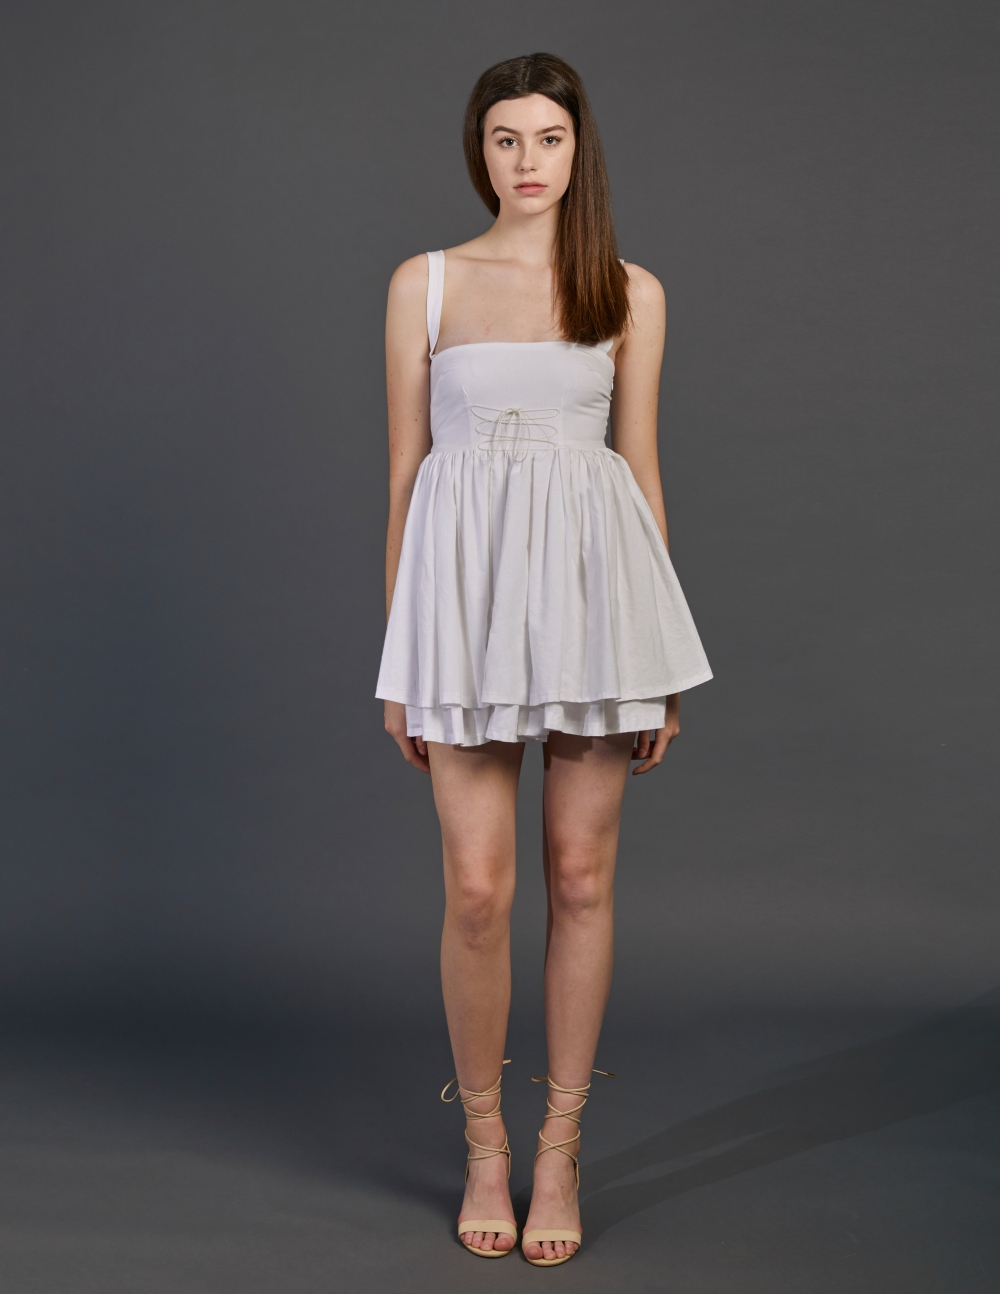 Alyssa-Nicole-Spring-2018-Summer-Dress-ANSP18102-1